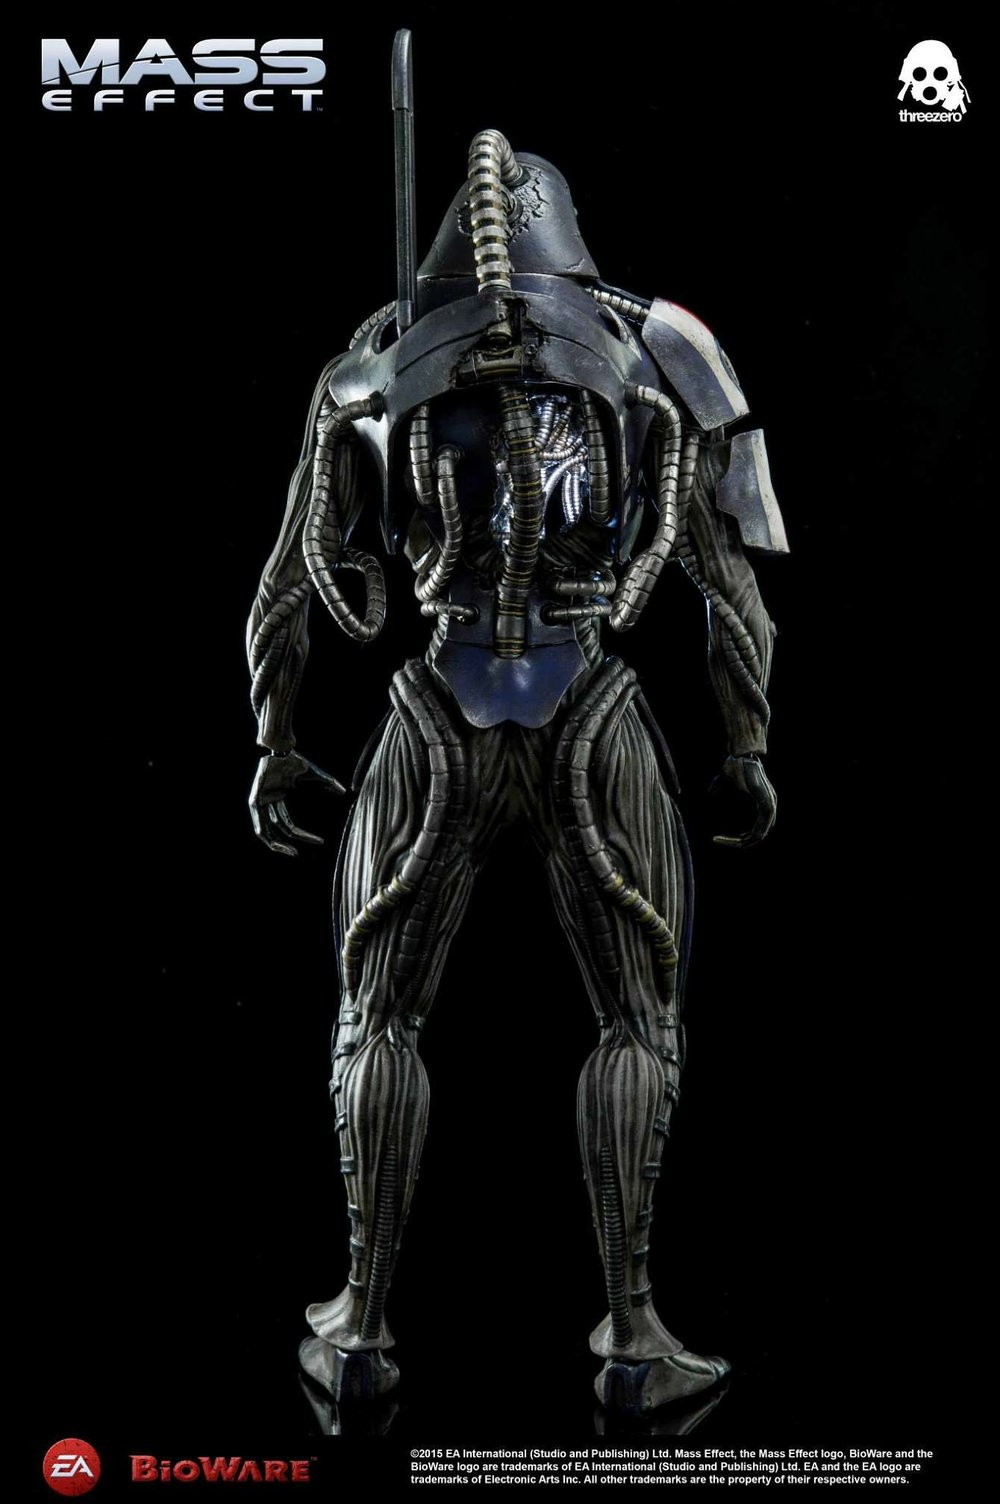 ThreeZero-Bioware-video-game-Legion-Mass-Effect-figure-15_1340_c.jpg